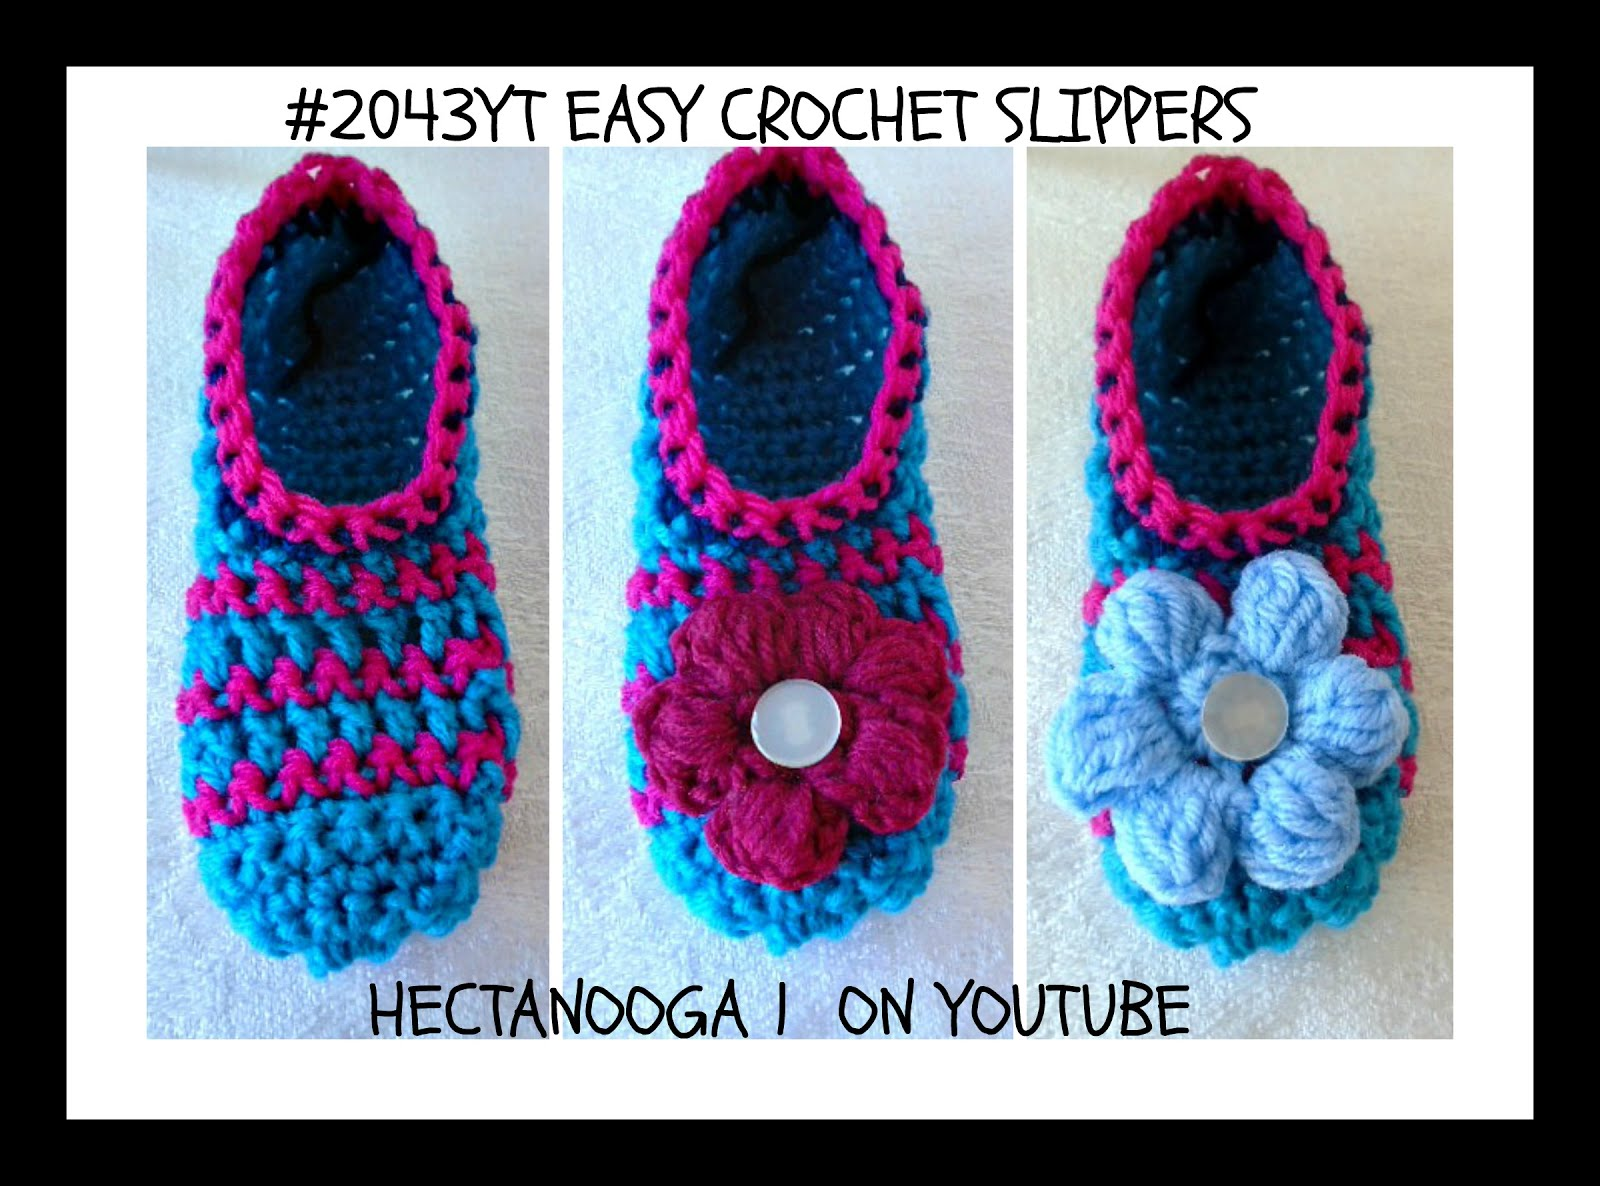 HECTANOOGA PATTERNS: FREE CROCHET PATTERN, #2043yt- Easy Crochet ...